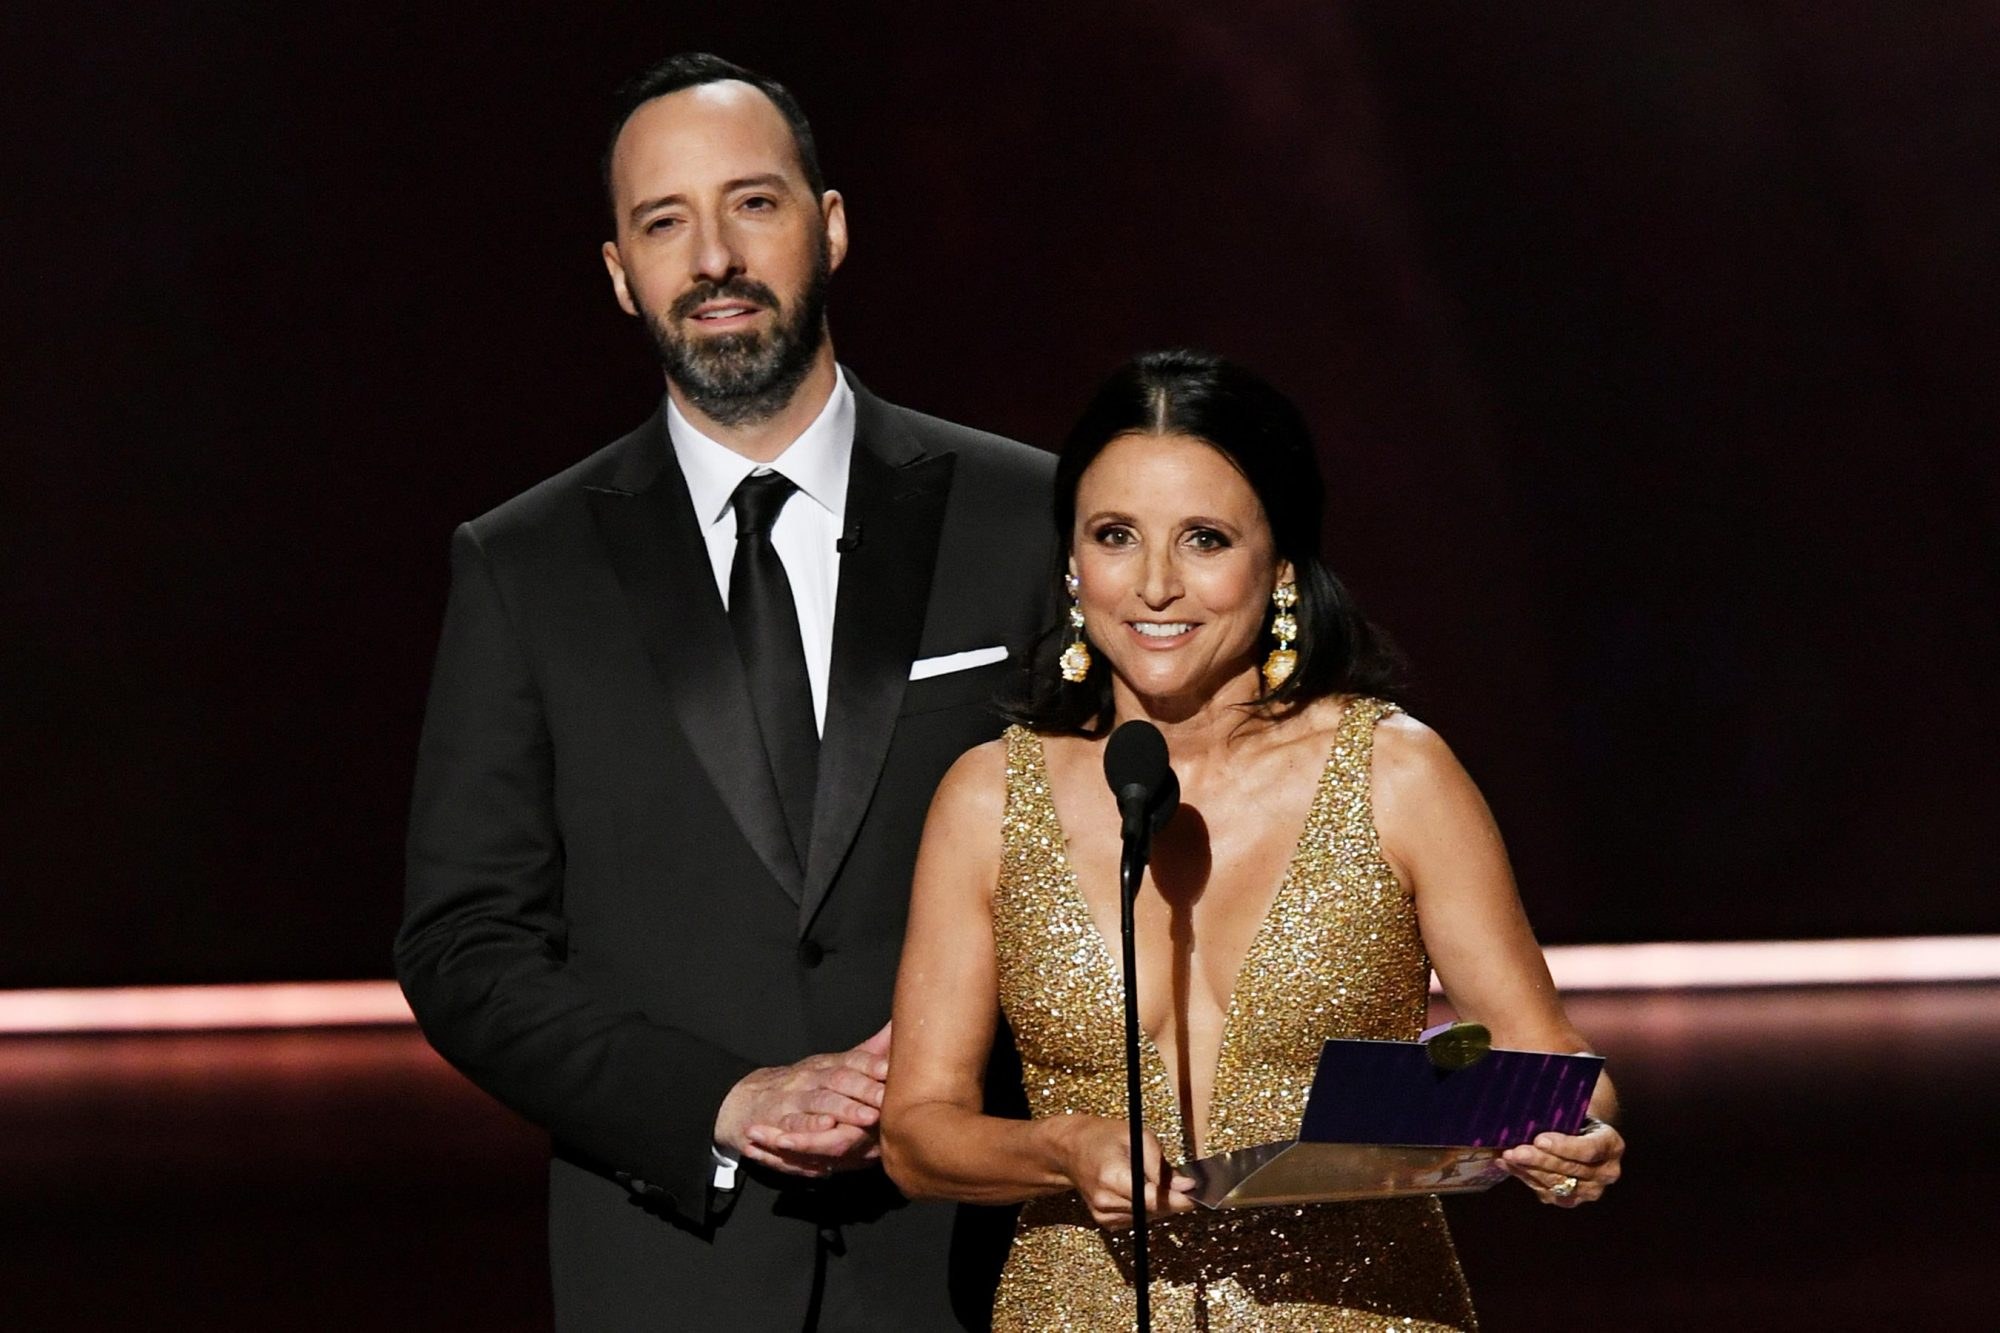 Tony Hale and Julia Louis-Dreyfus